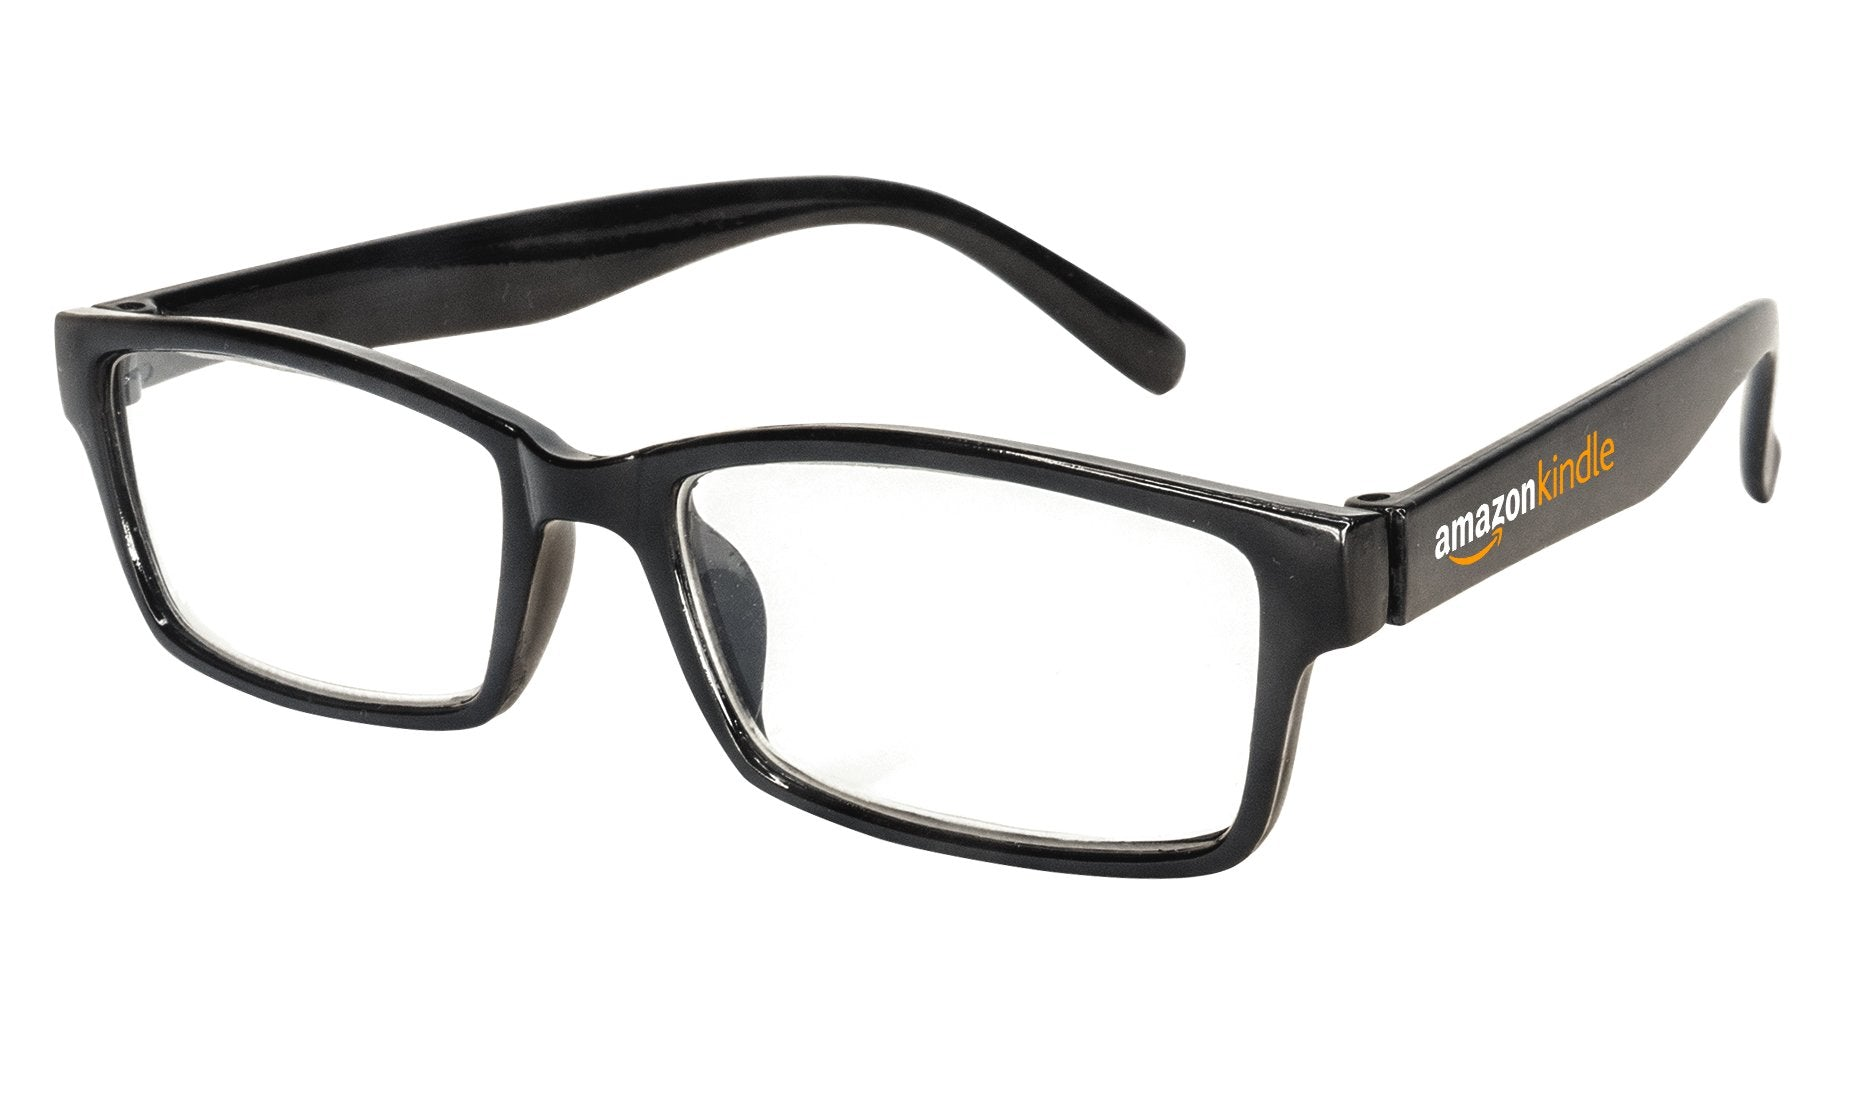 9898 - Black Squared Readers Eyeglasses